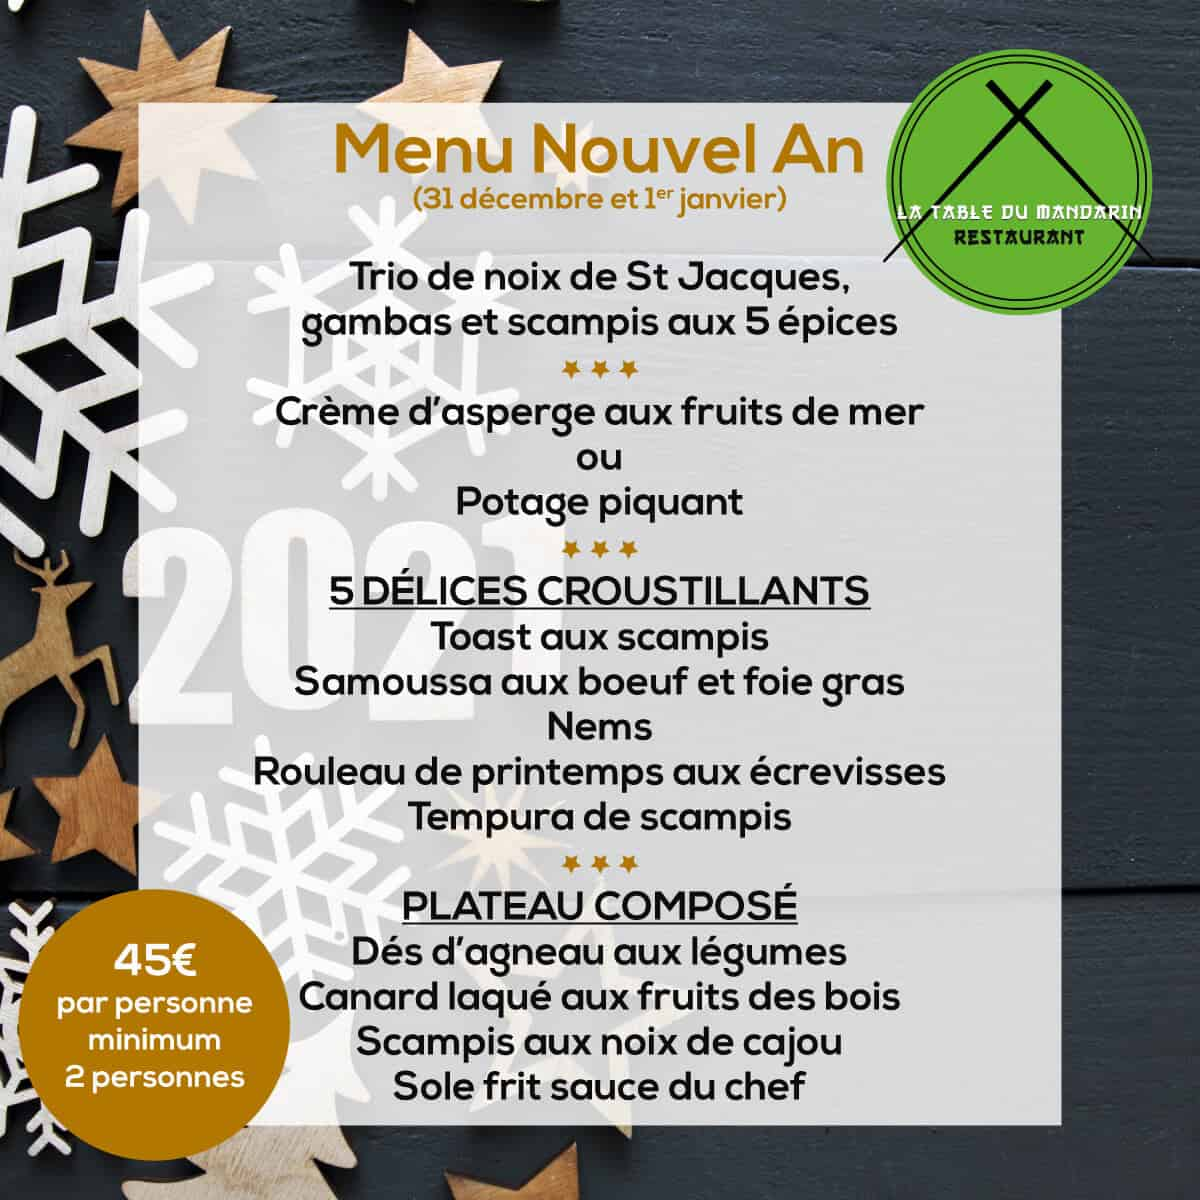 Menu Nouvel An 2020-2021